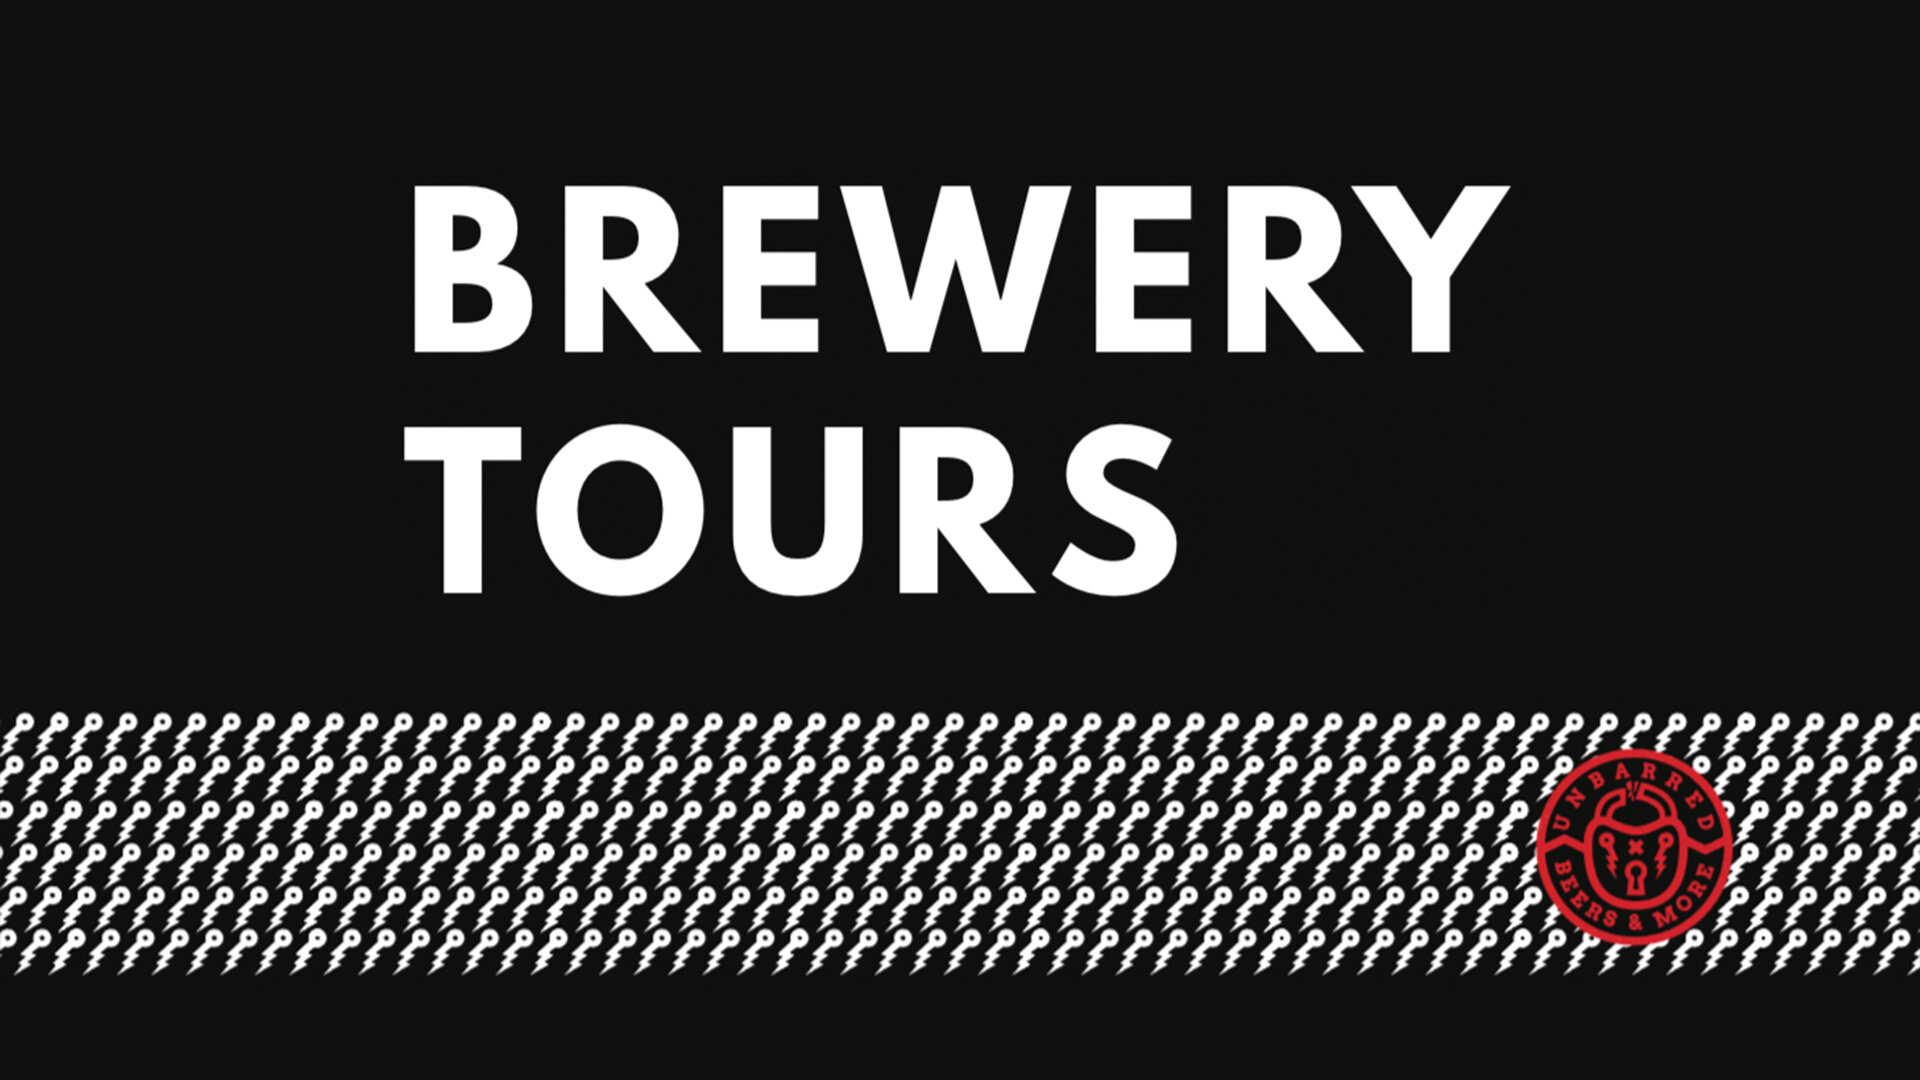 Unbarred-Brewery-Tours-events-brighton-things-to-do.jpg